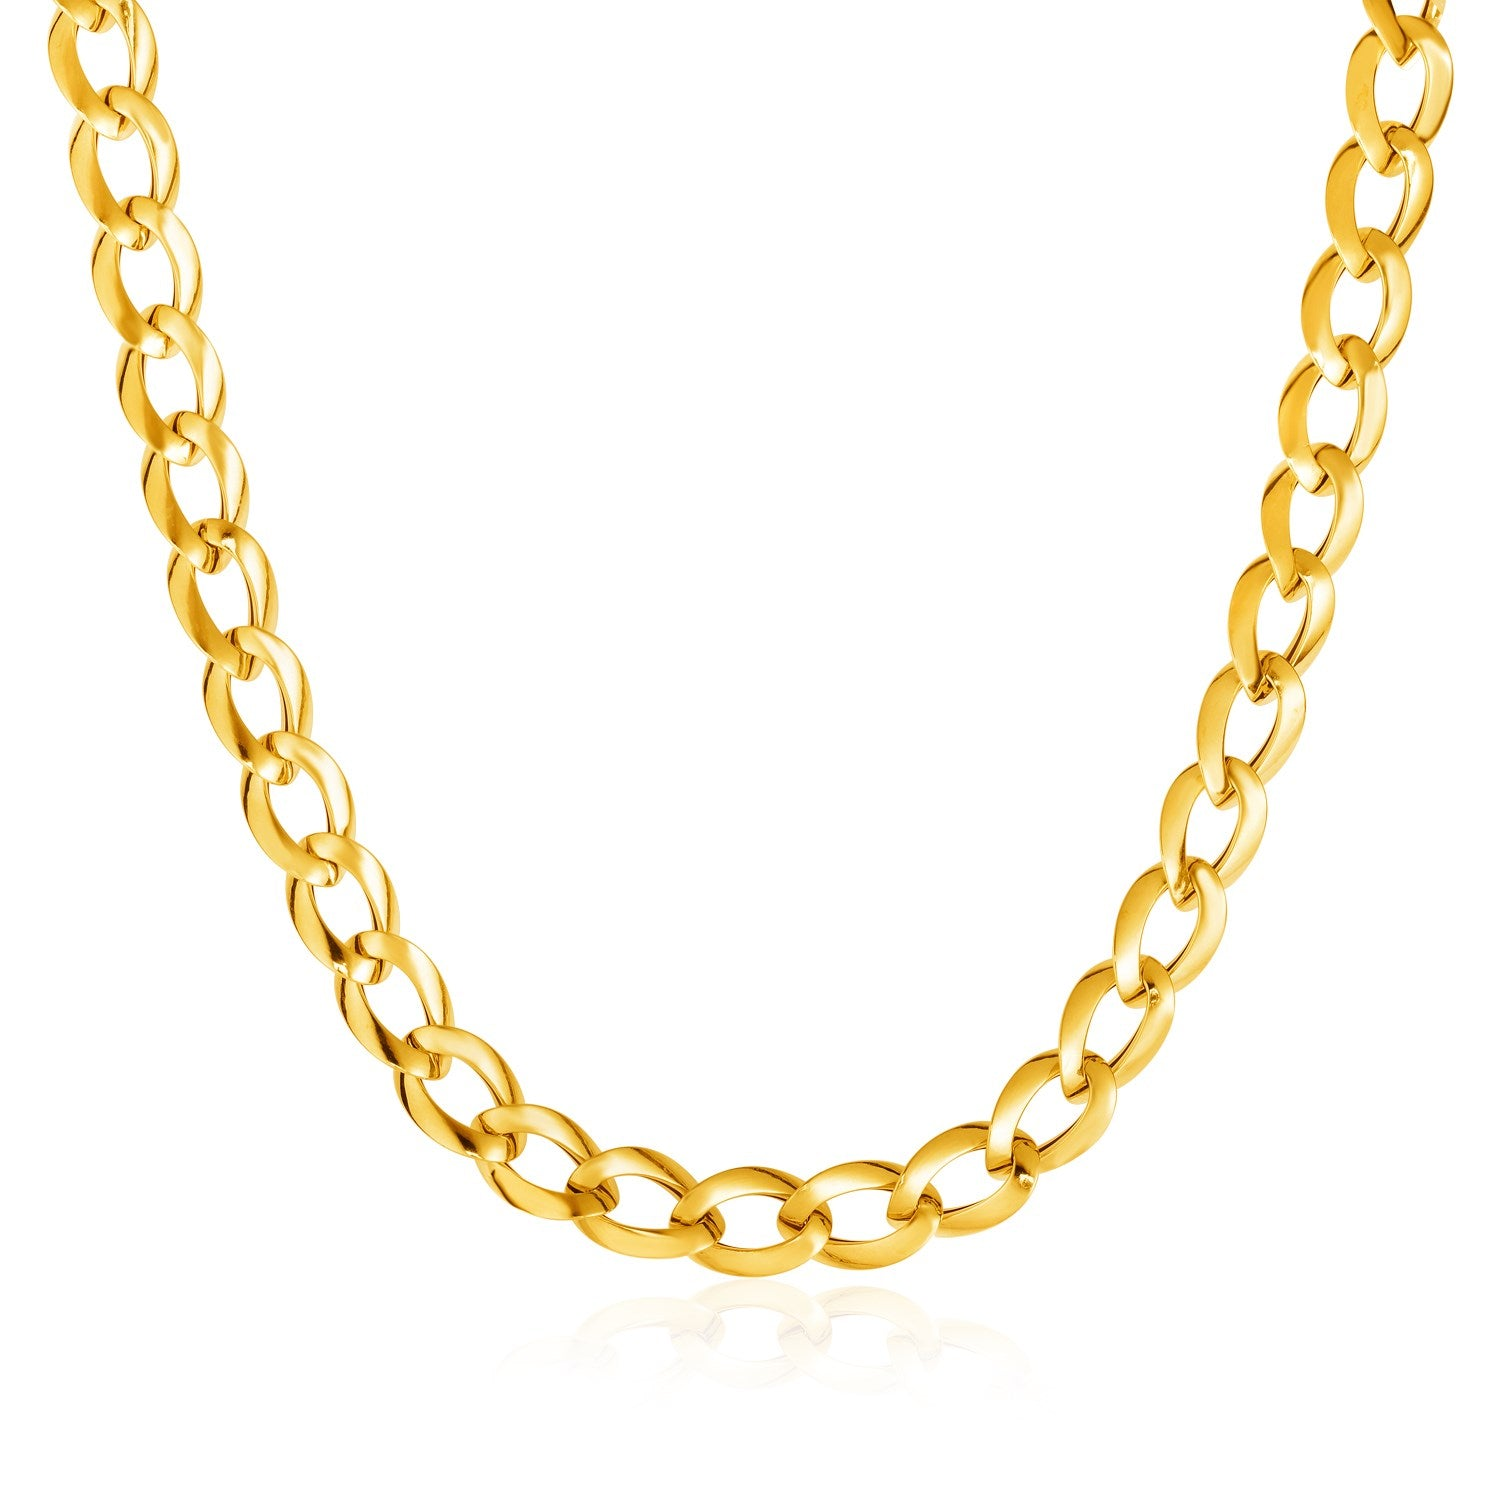 14K Yellow Gold Curb Style Necklace